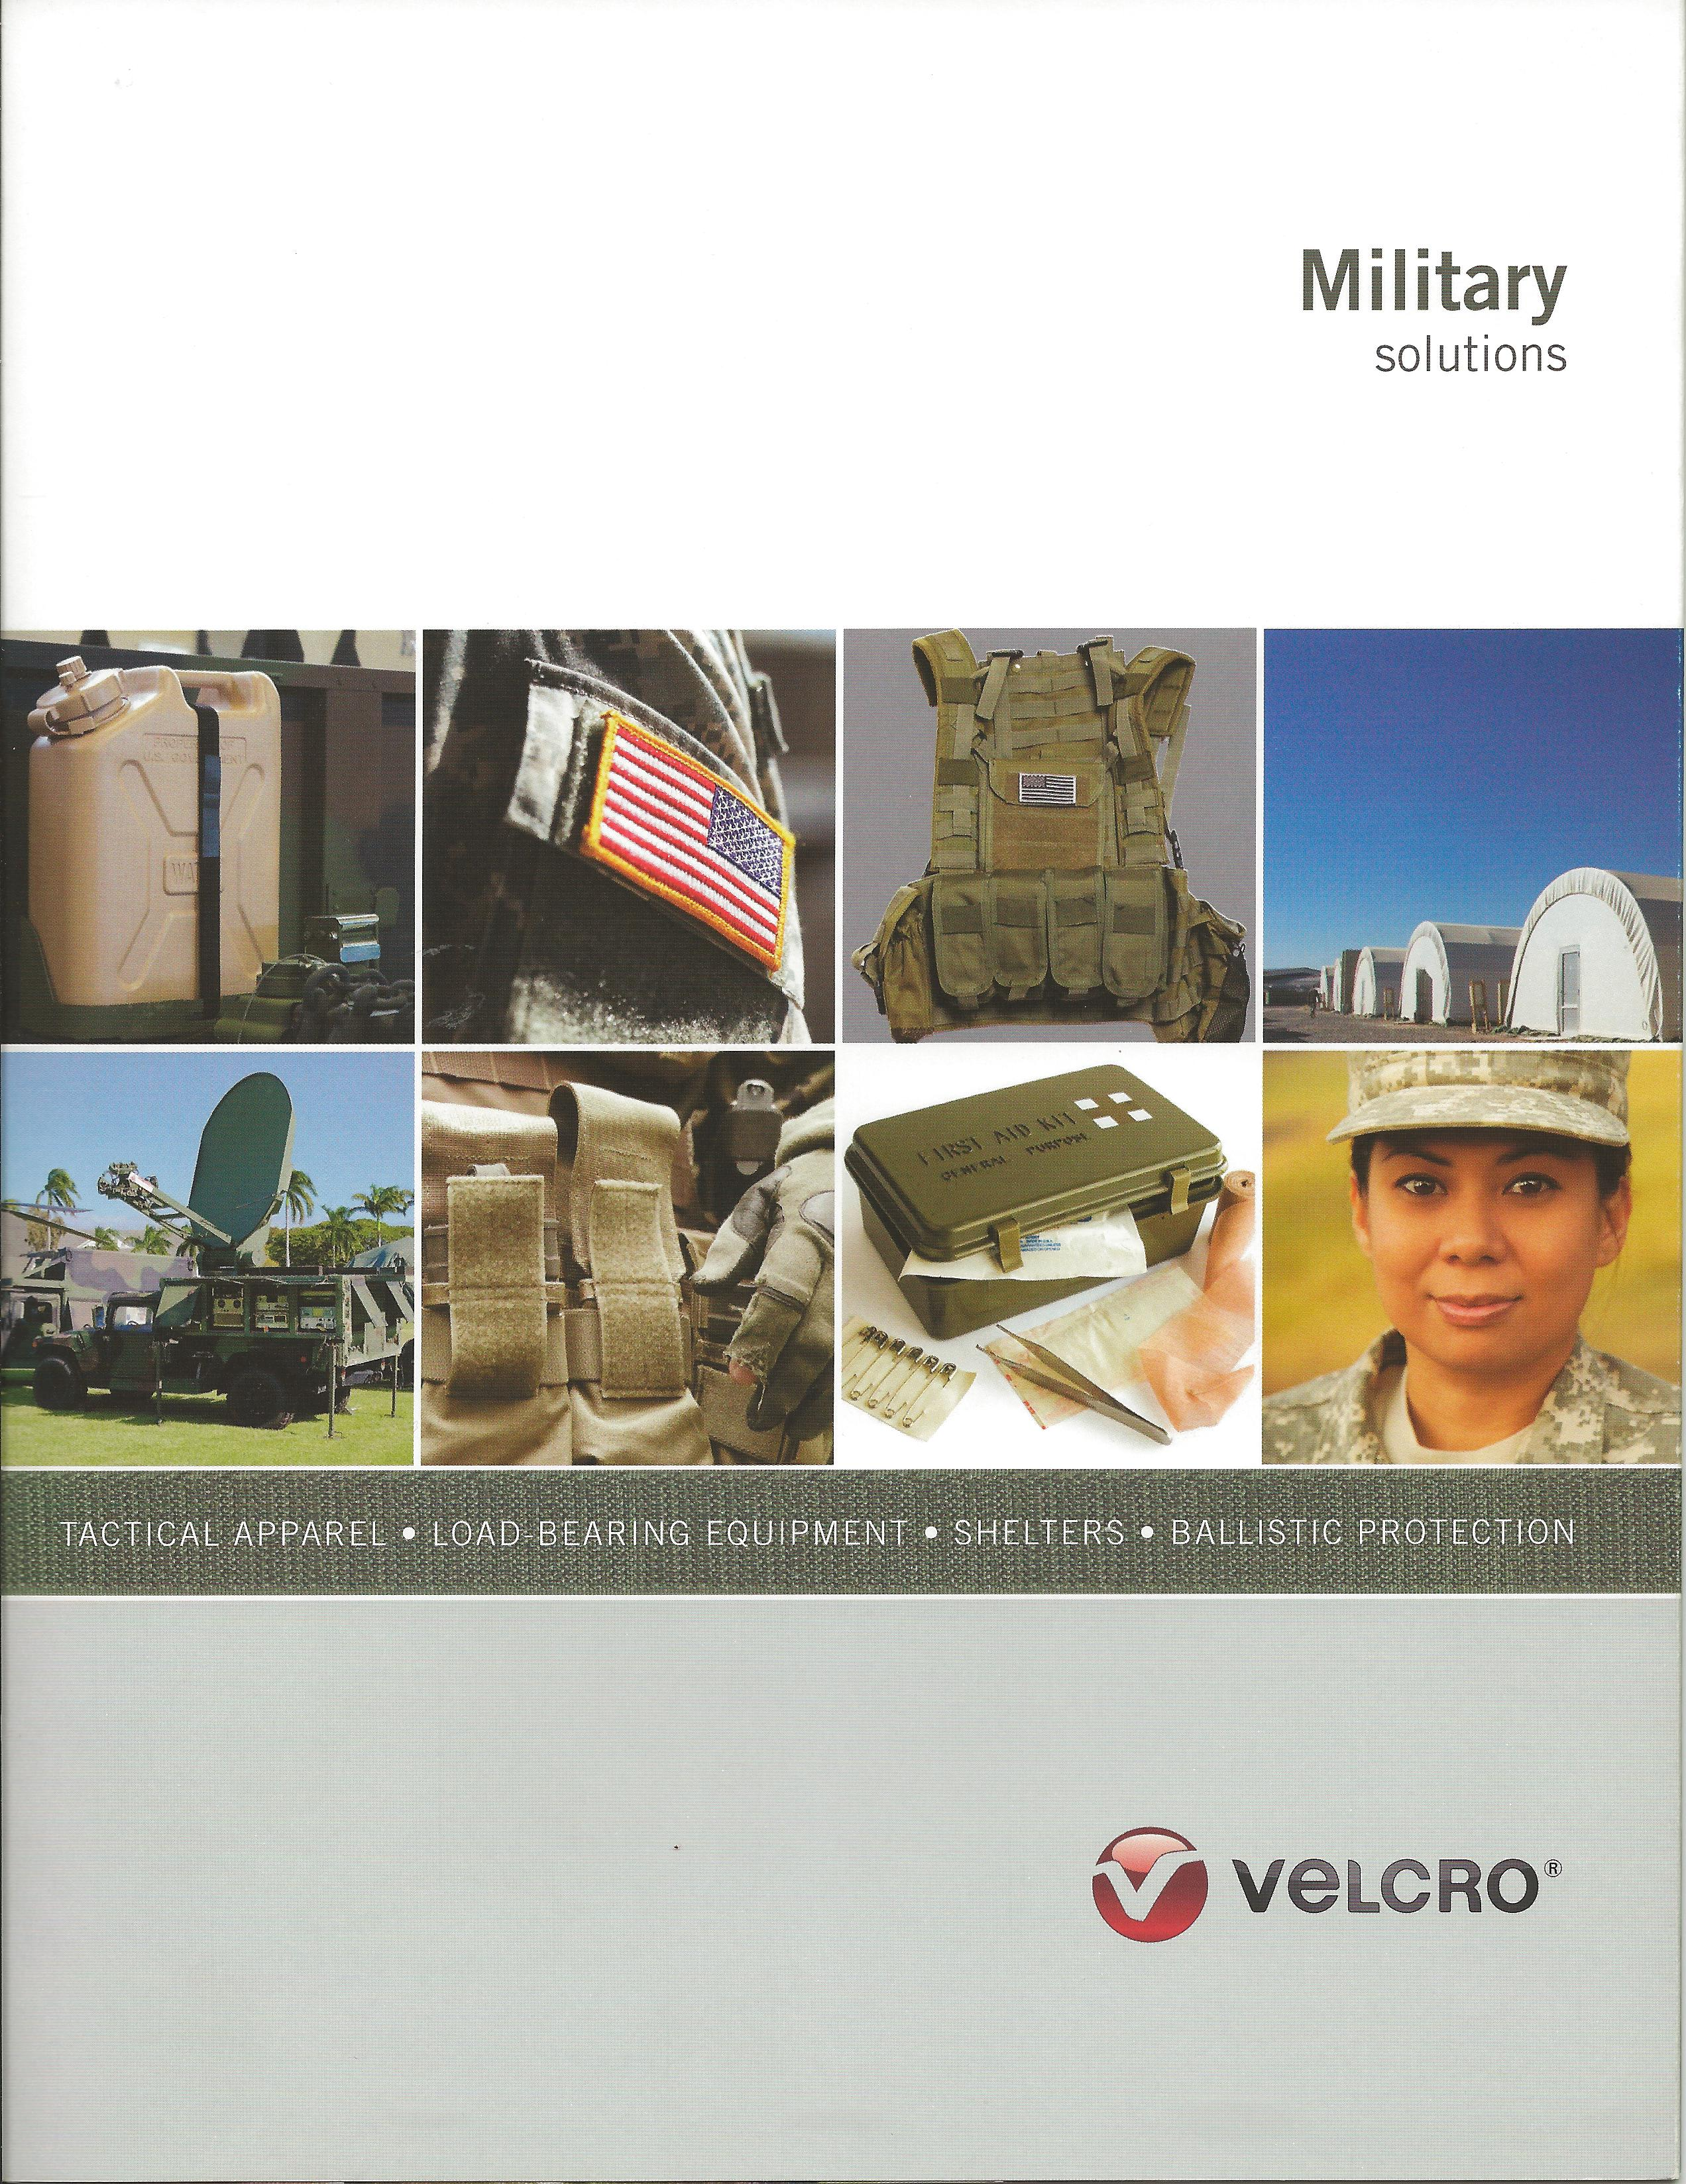 VELCRO_military_solutions_cover